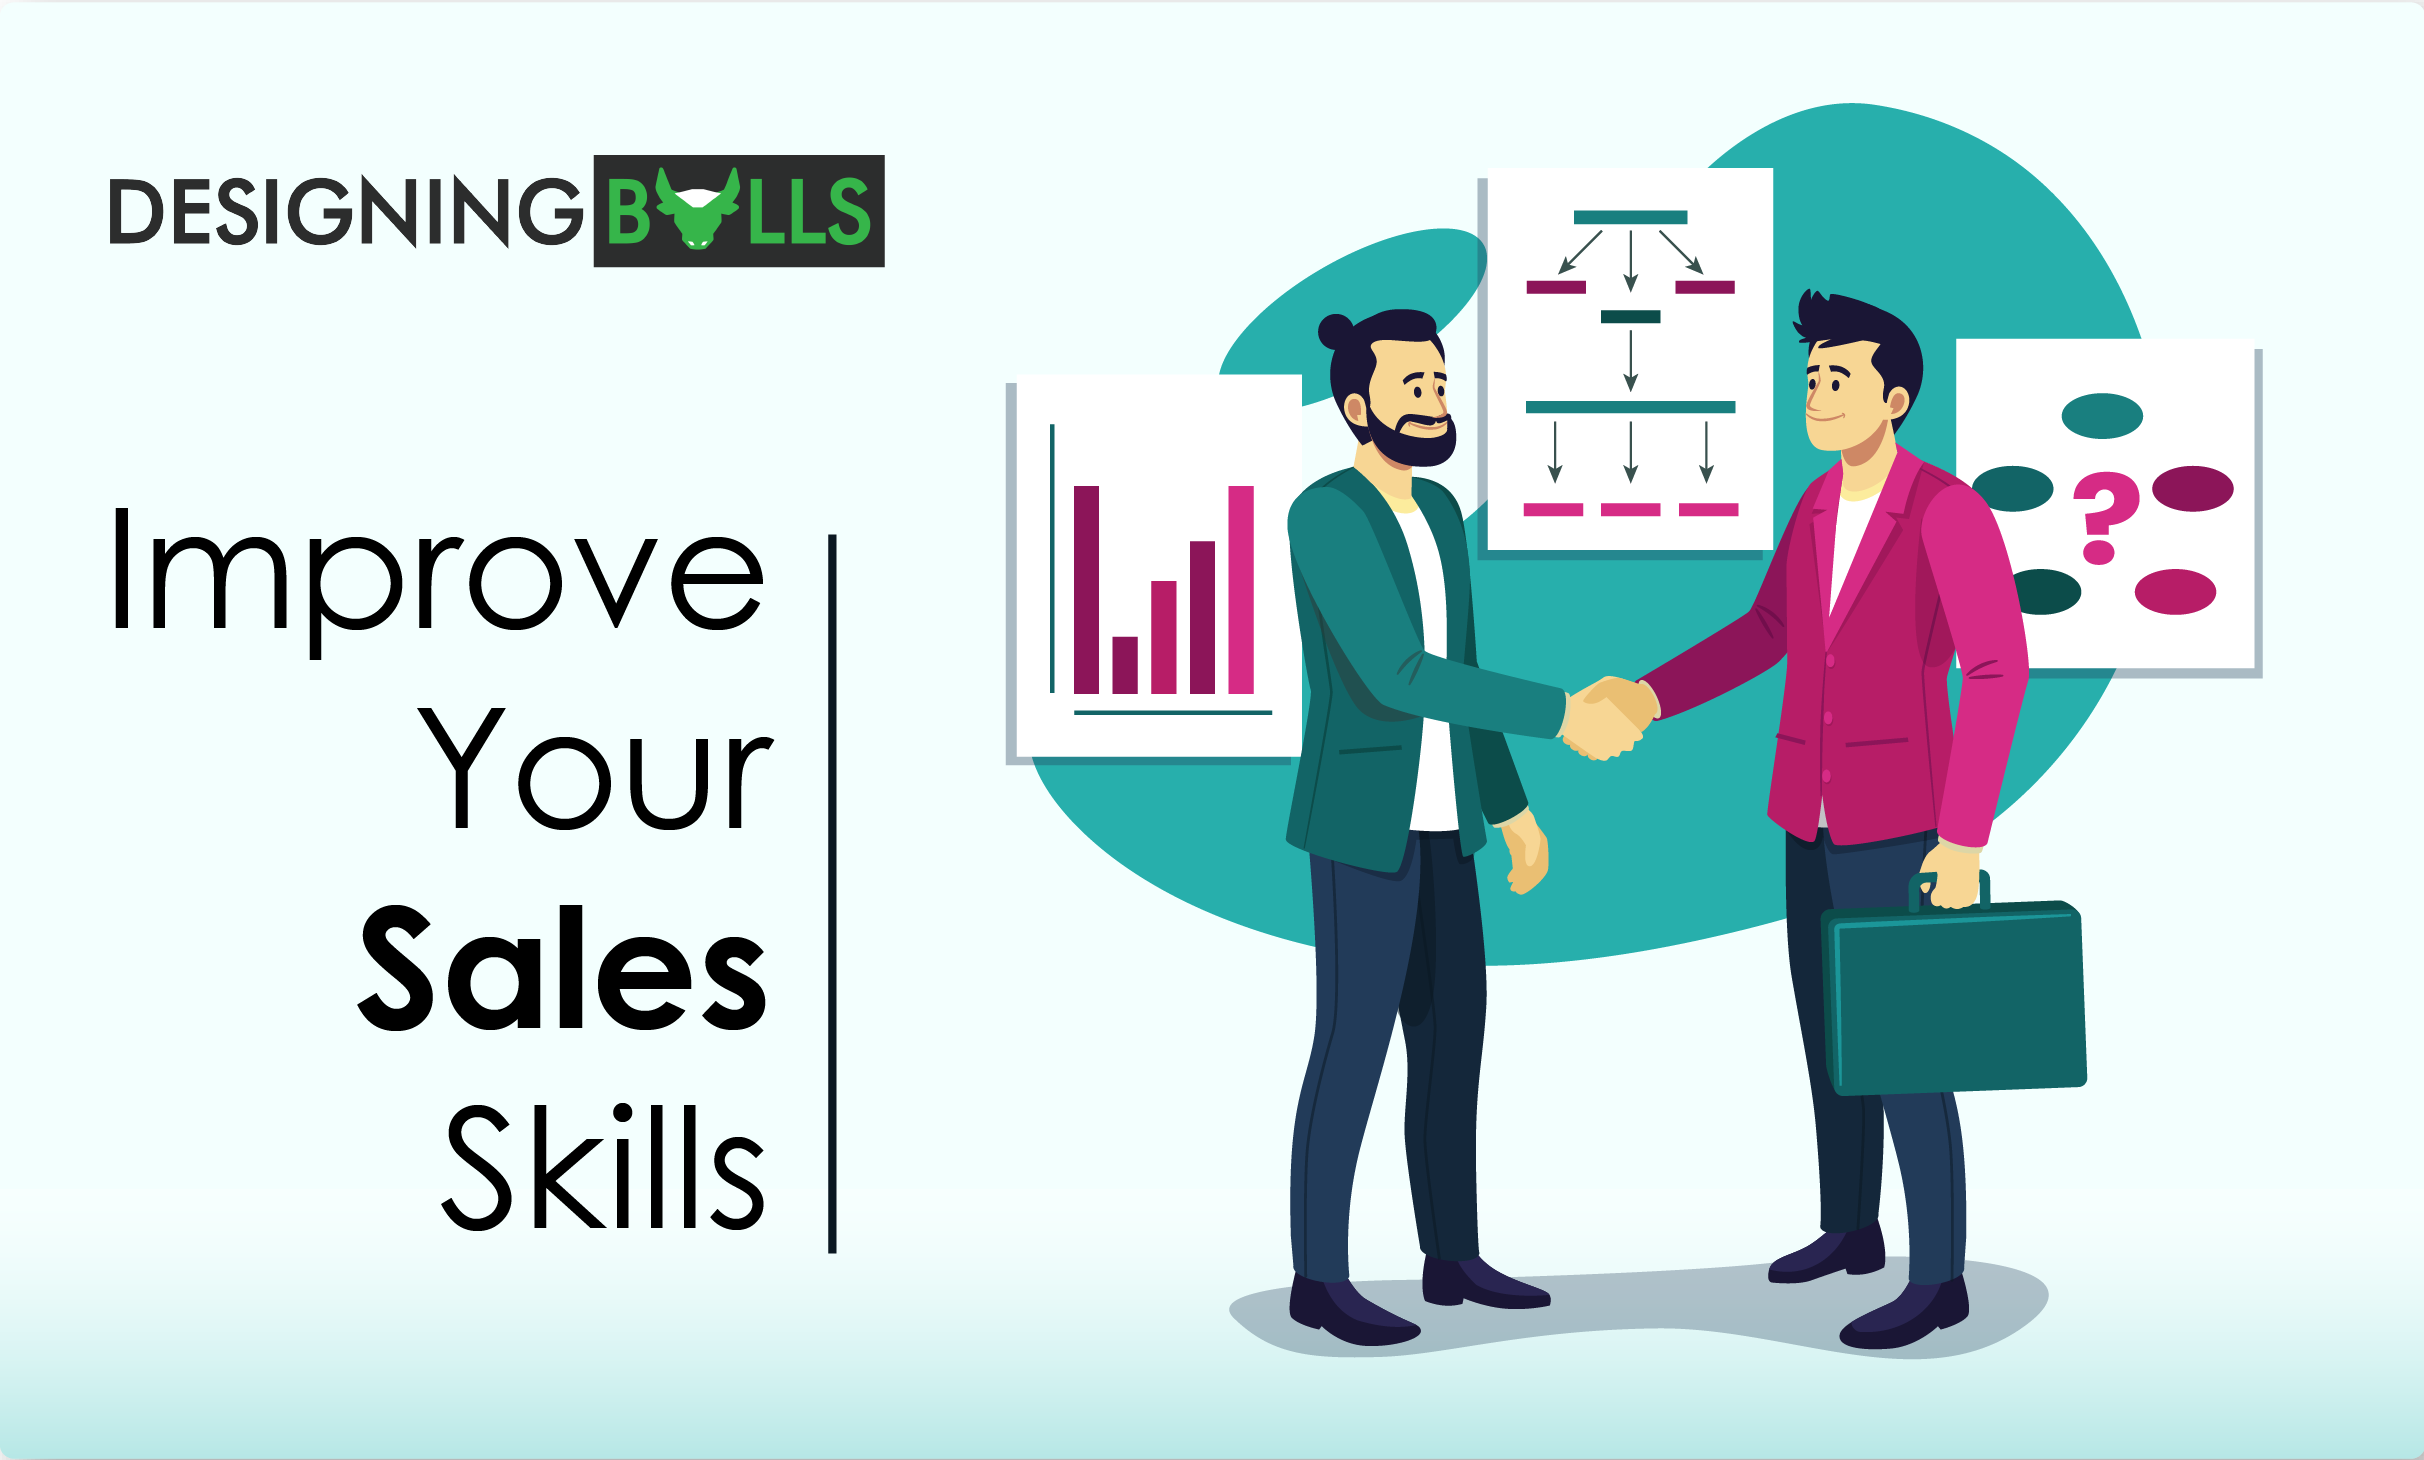 How to improve your sales skills?